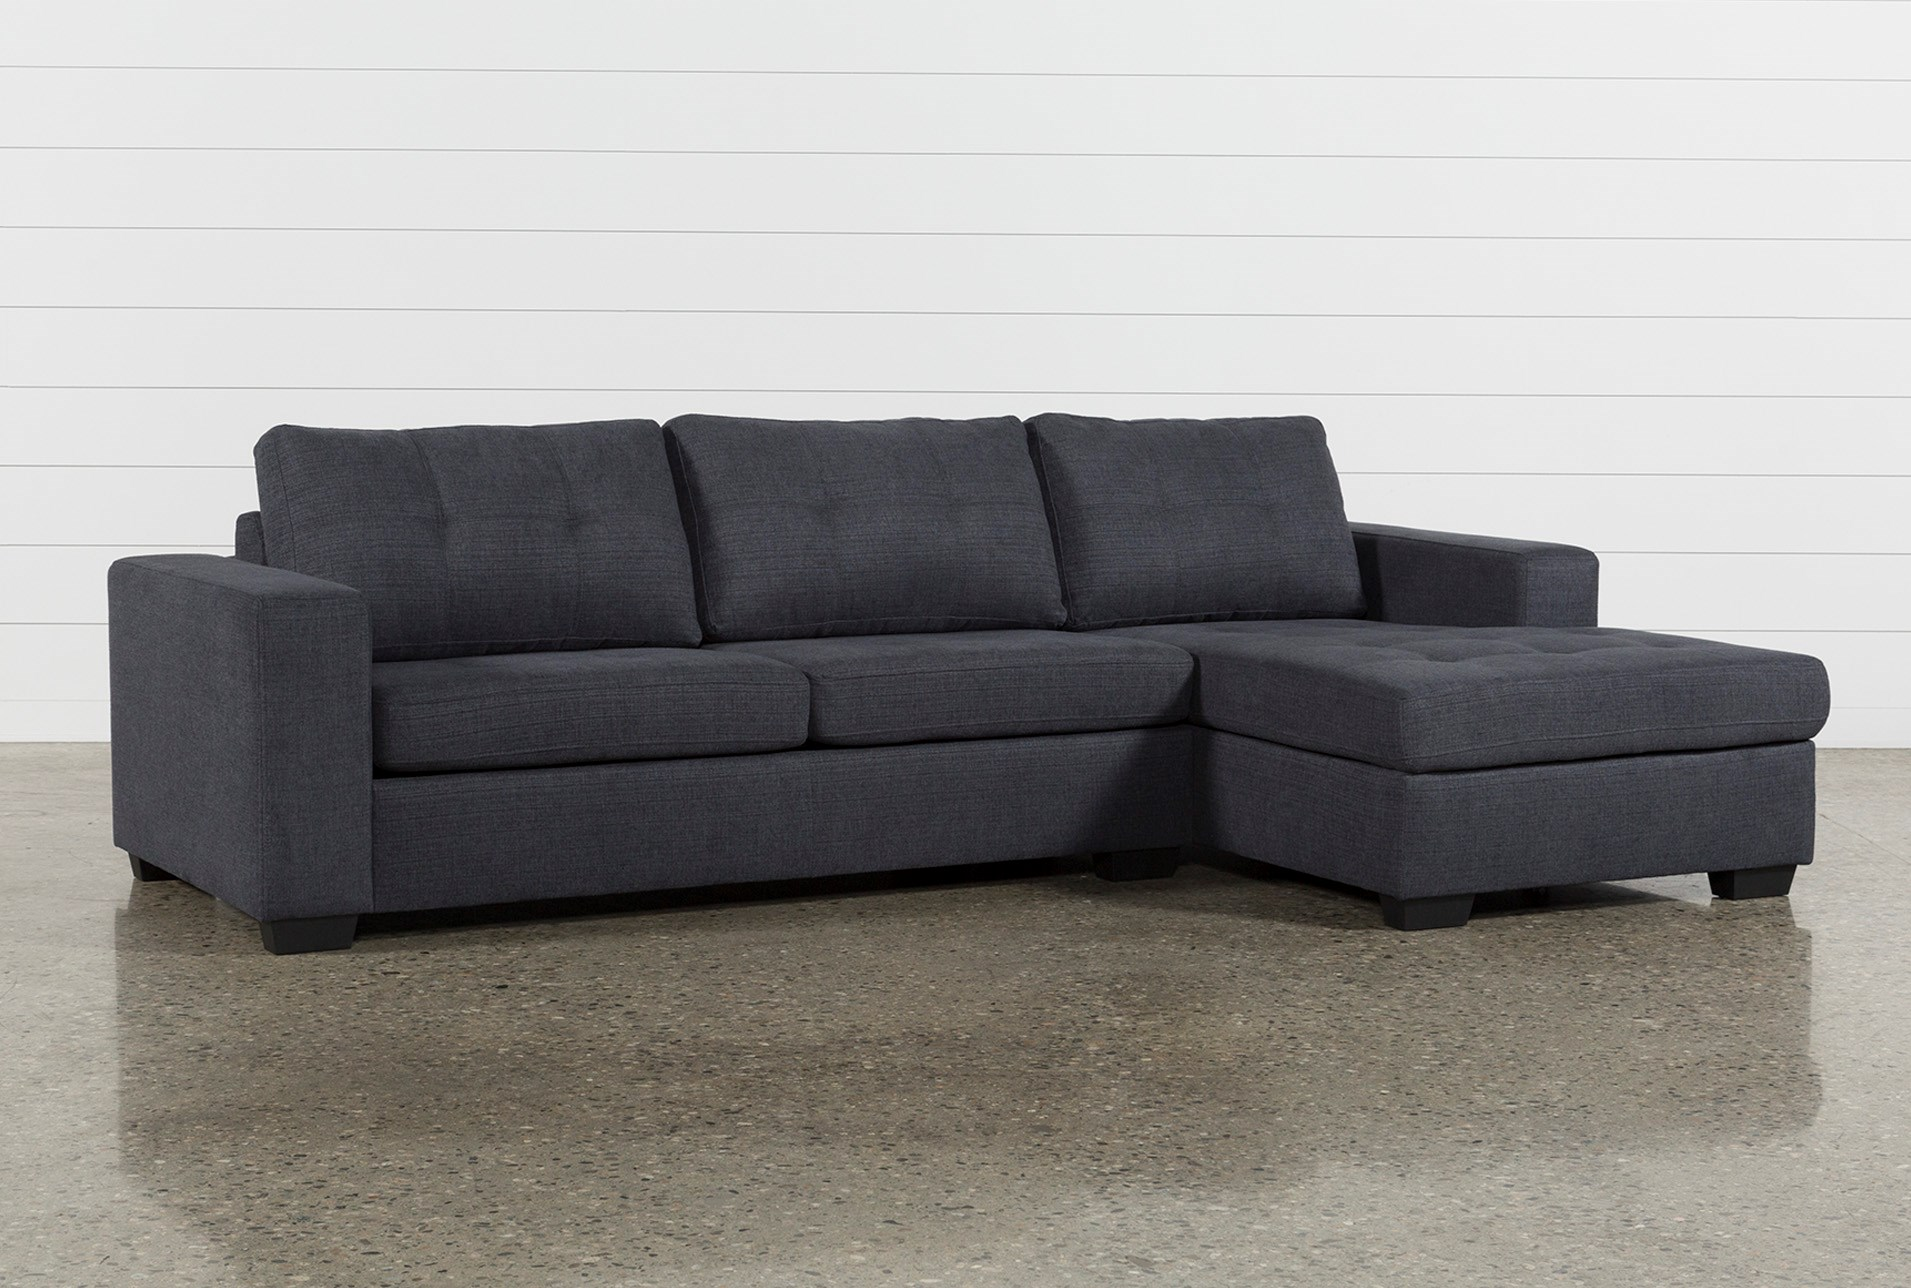 Remington Charcoal 2 Piece Sectional W Right Facing Storage Chaise